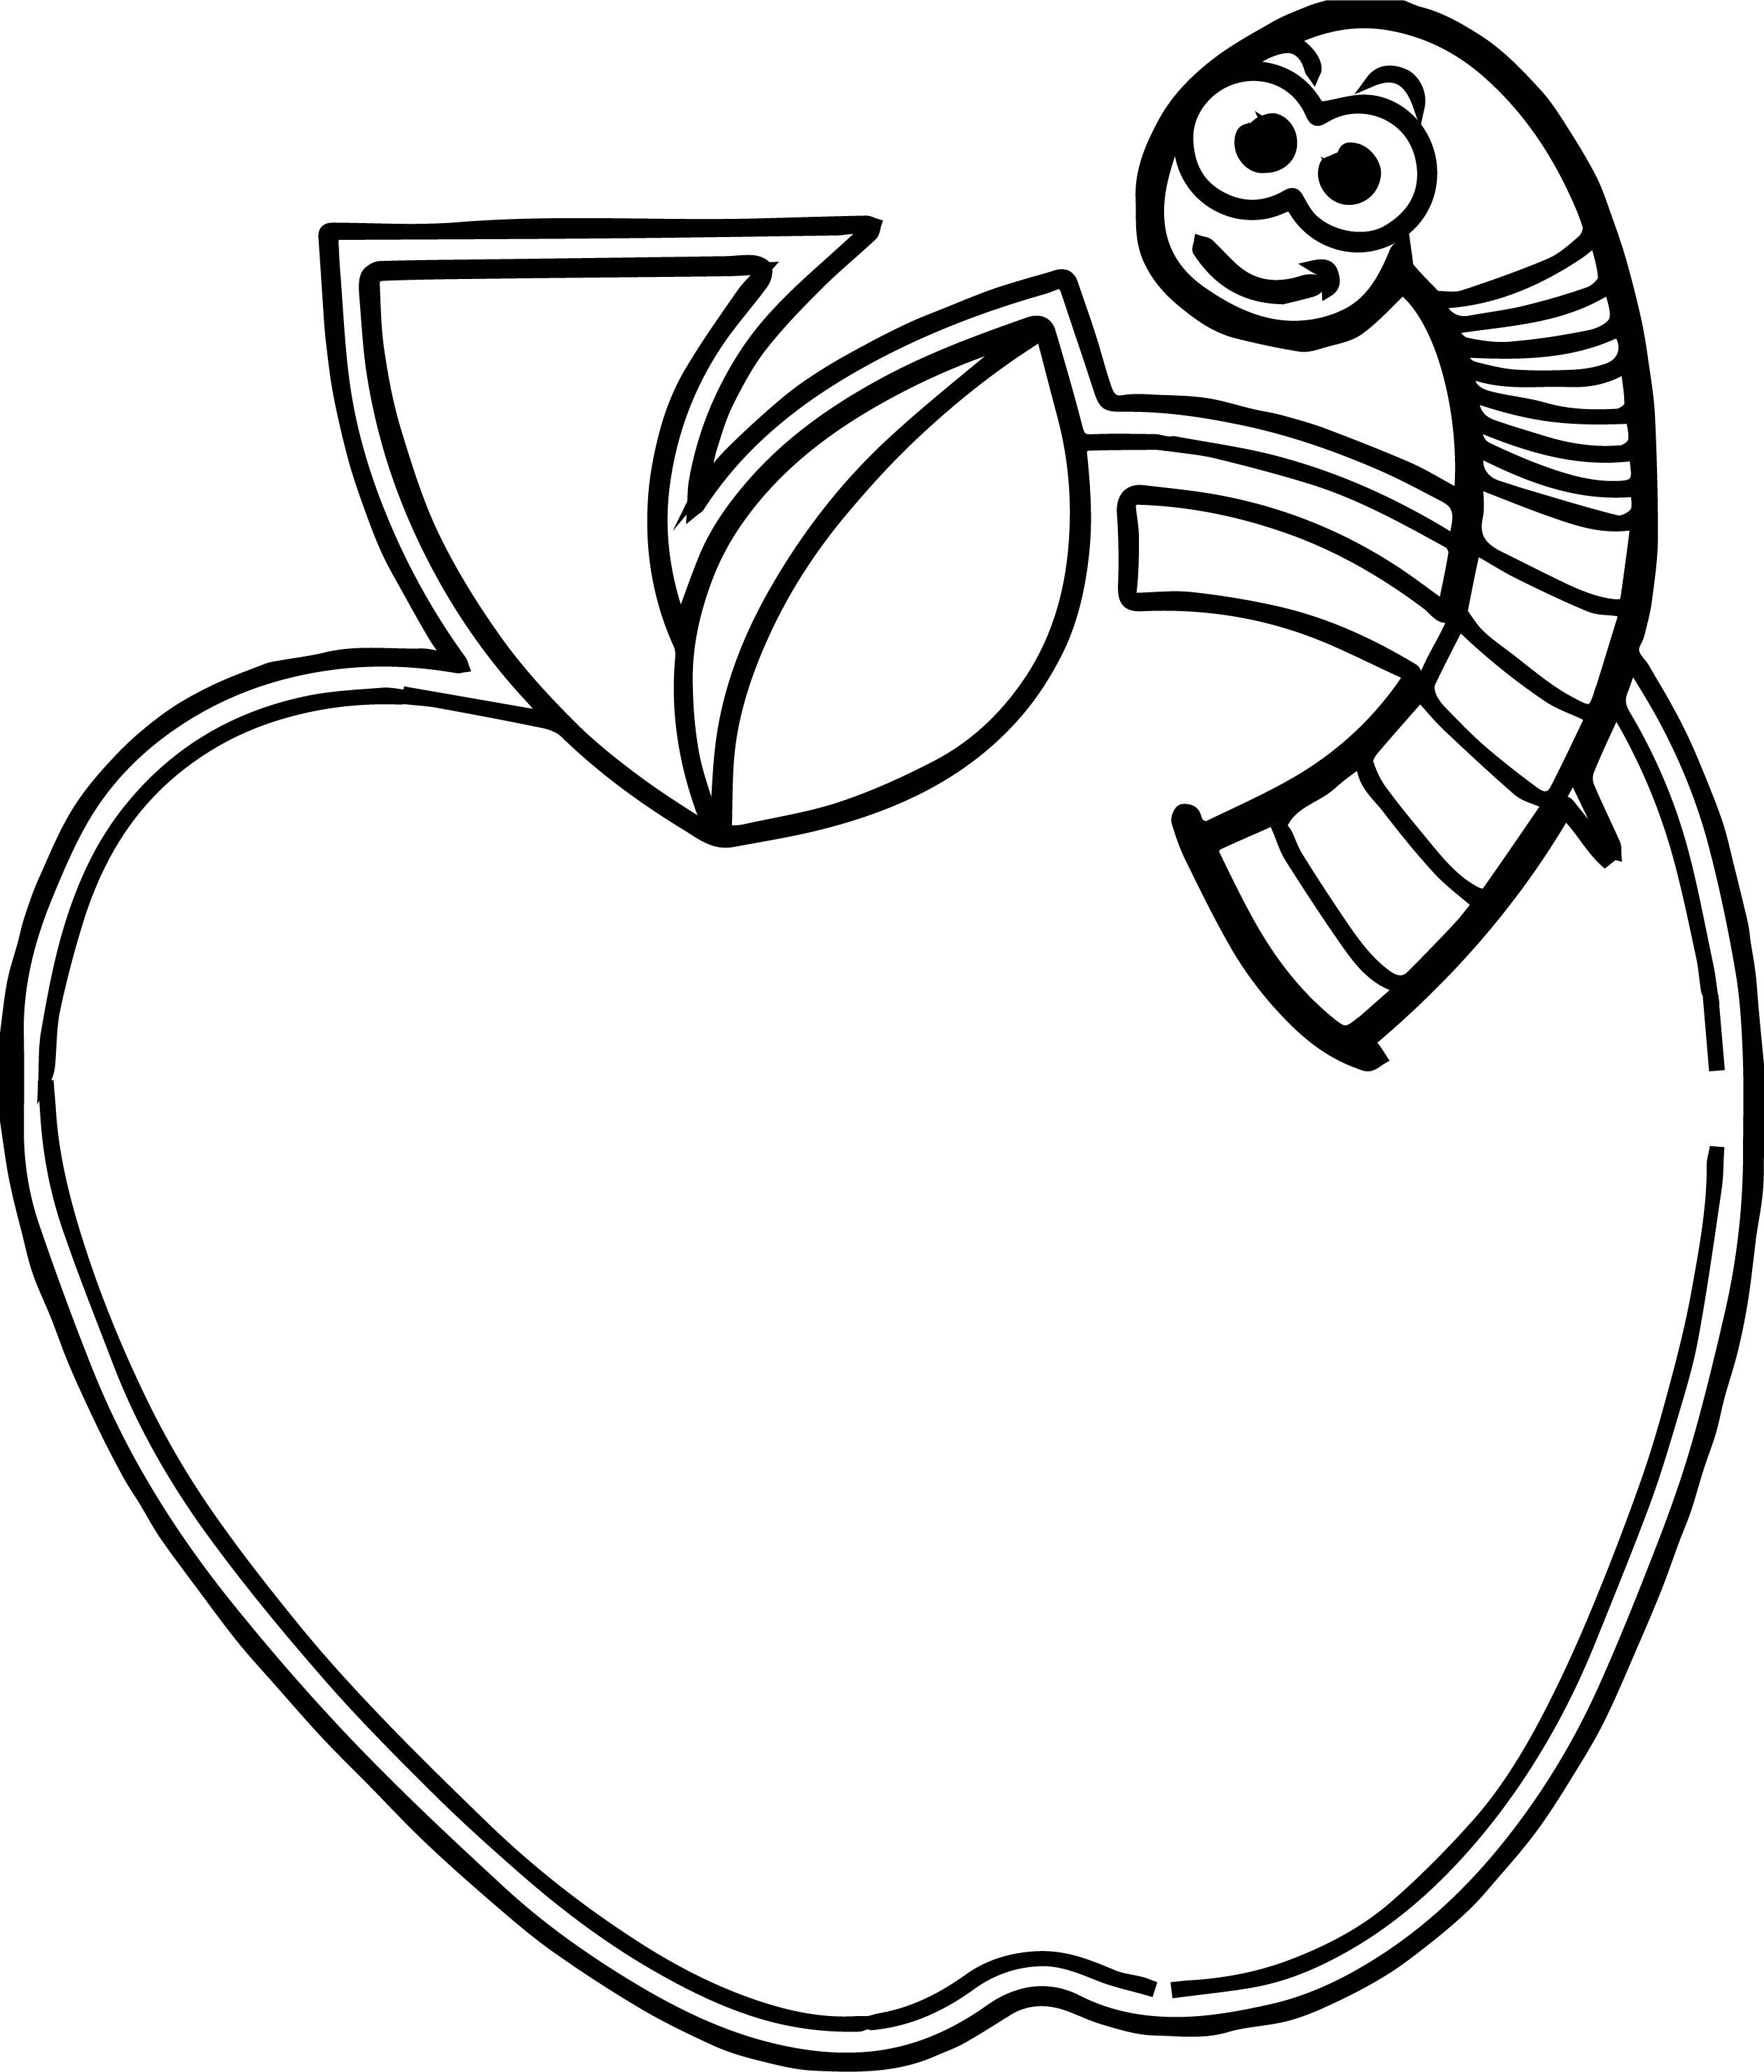 Apple Worm Coloring Pages